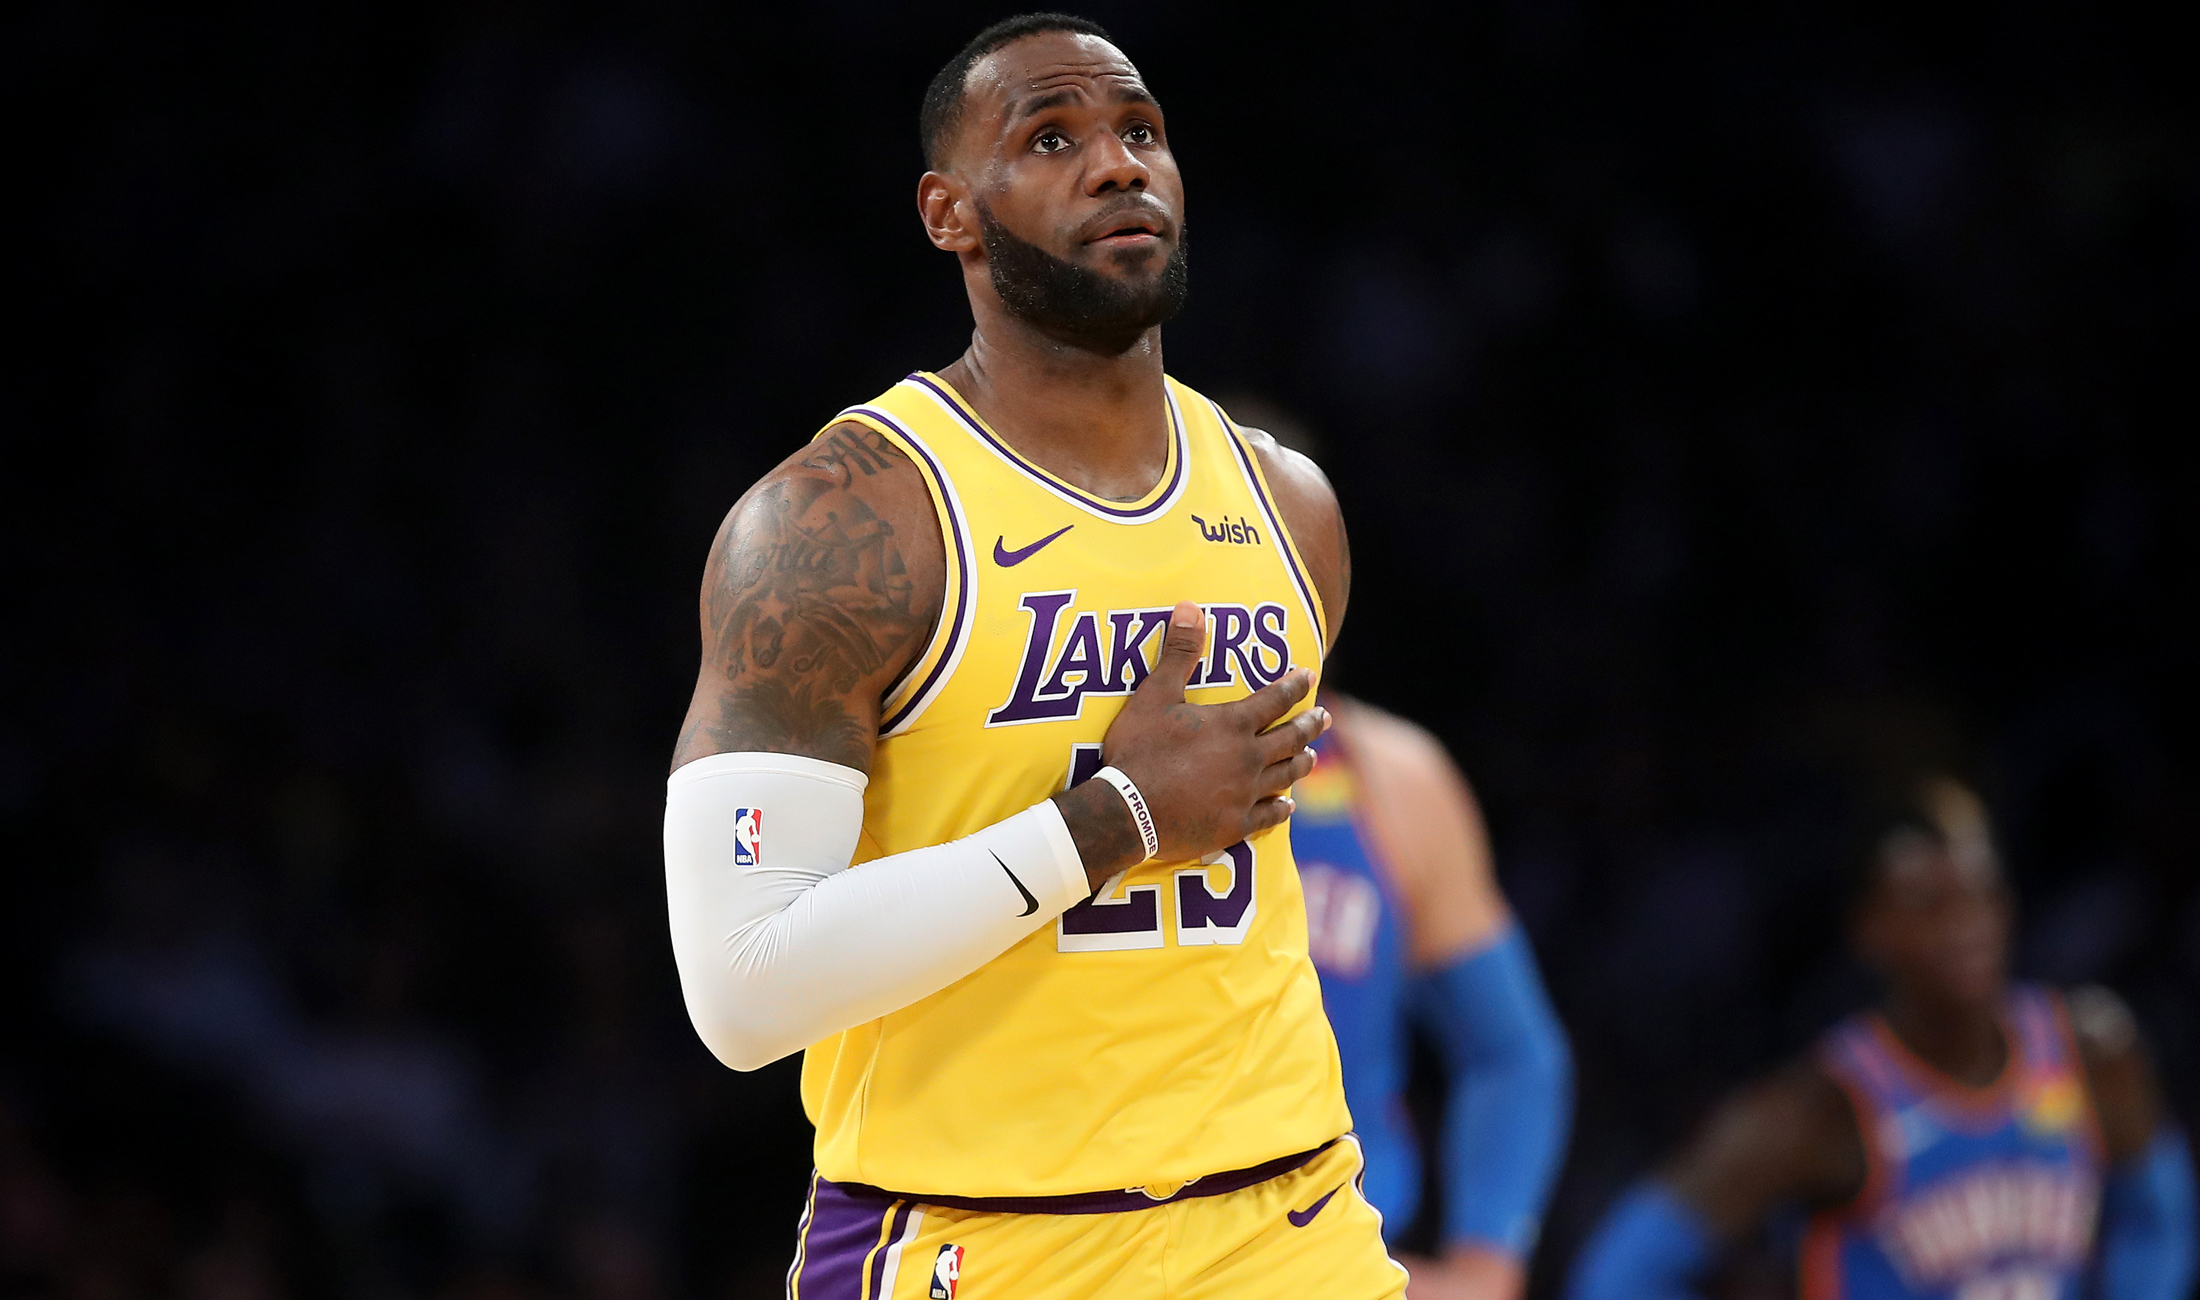 LeBron makes history in Lakers' win